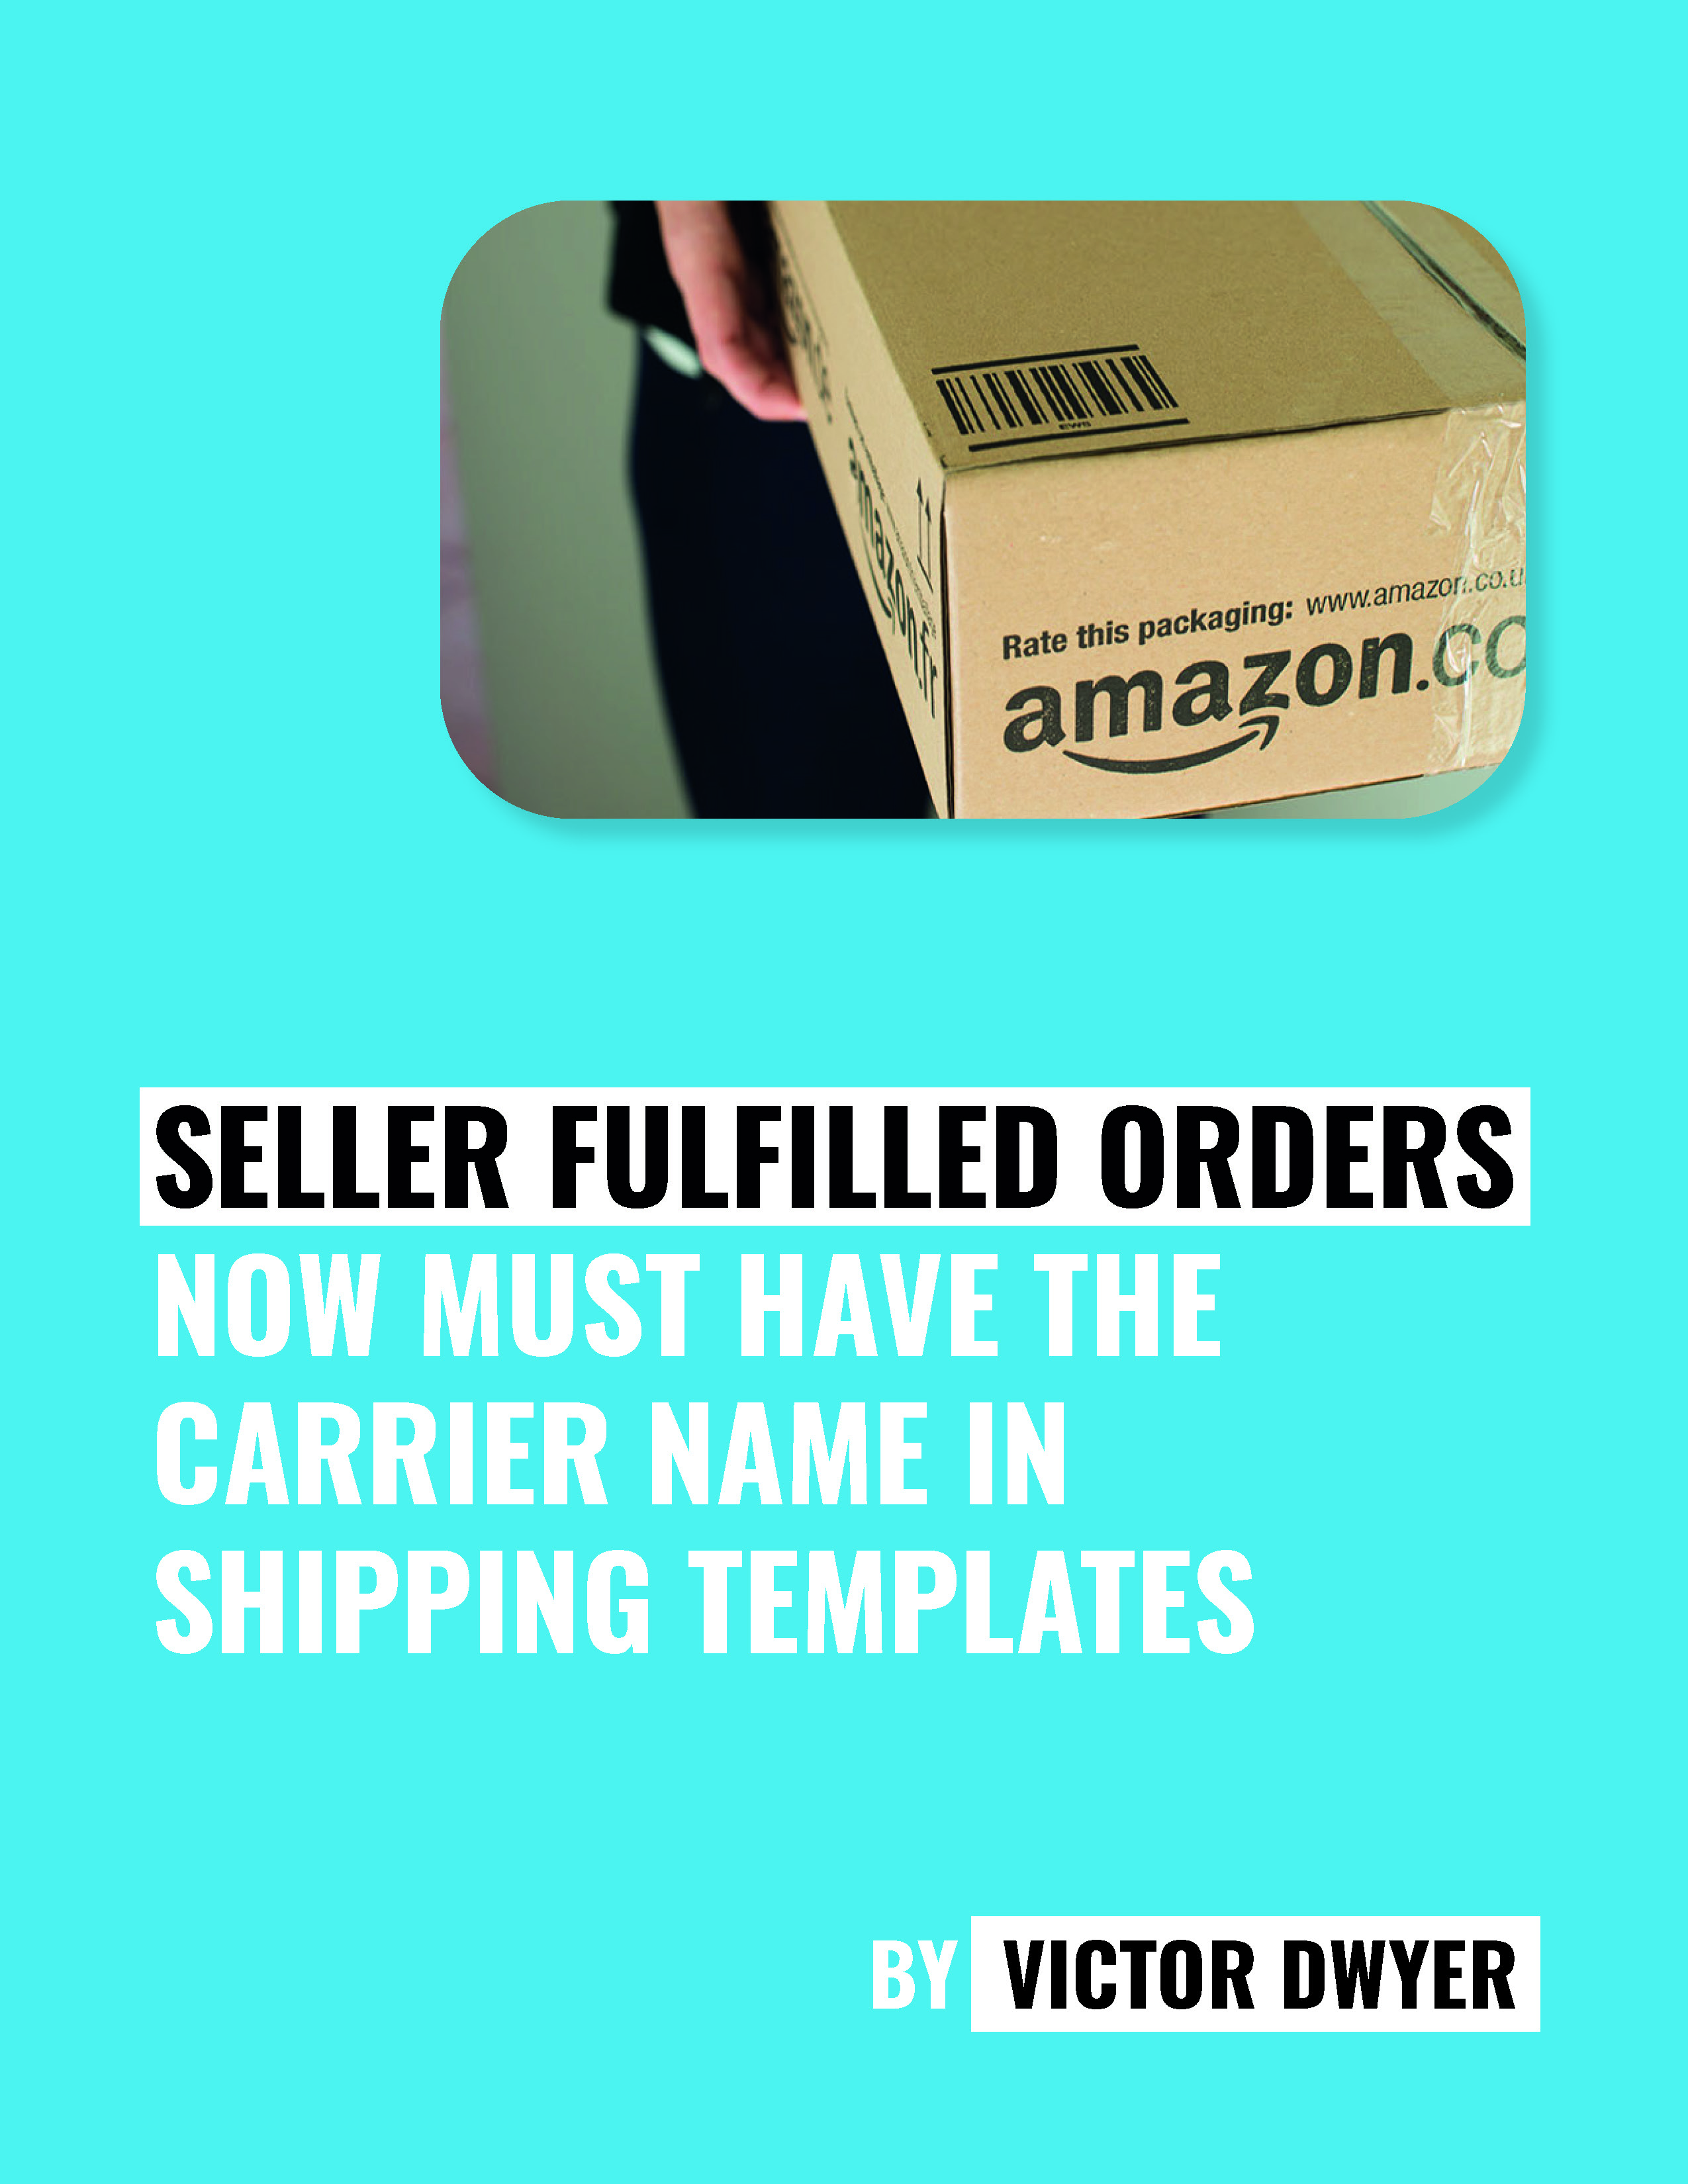 Amazon-Monthly-News-April-2021_Page_08-1